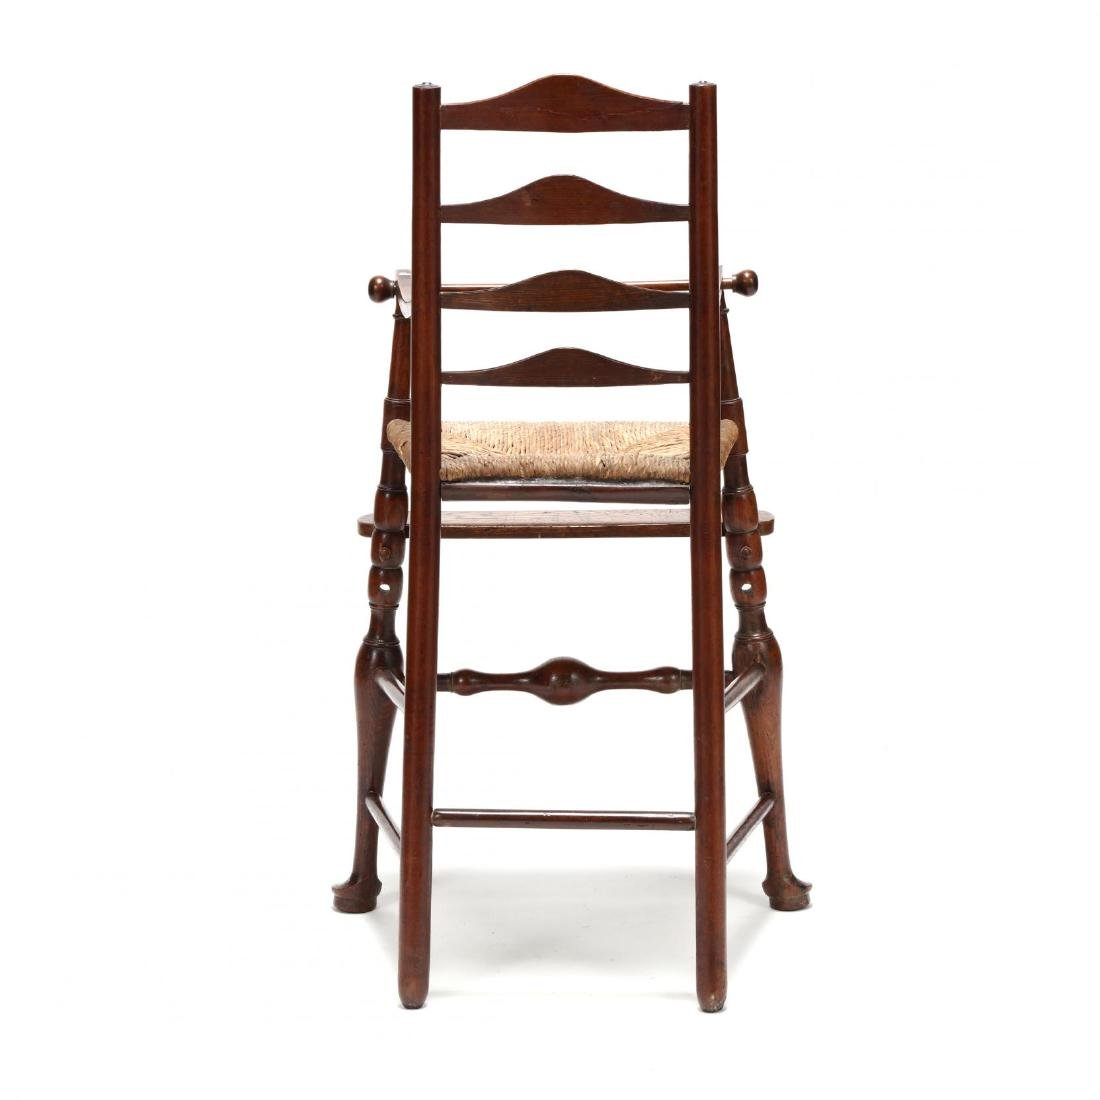 English Queen Anne Style Elm Child's High Chair - 3